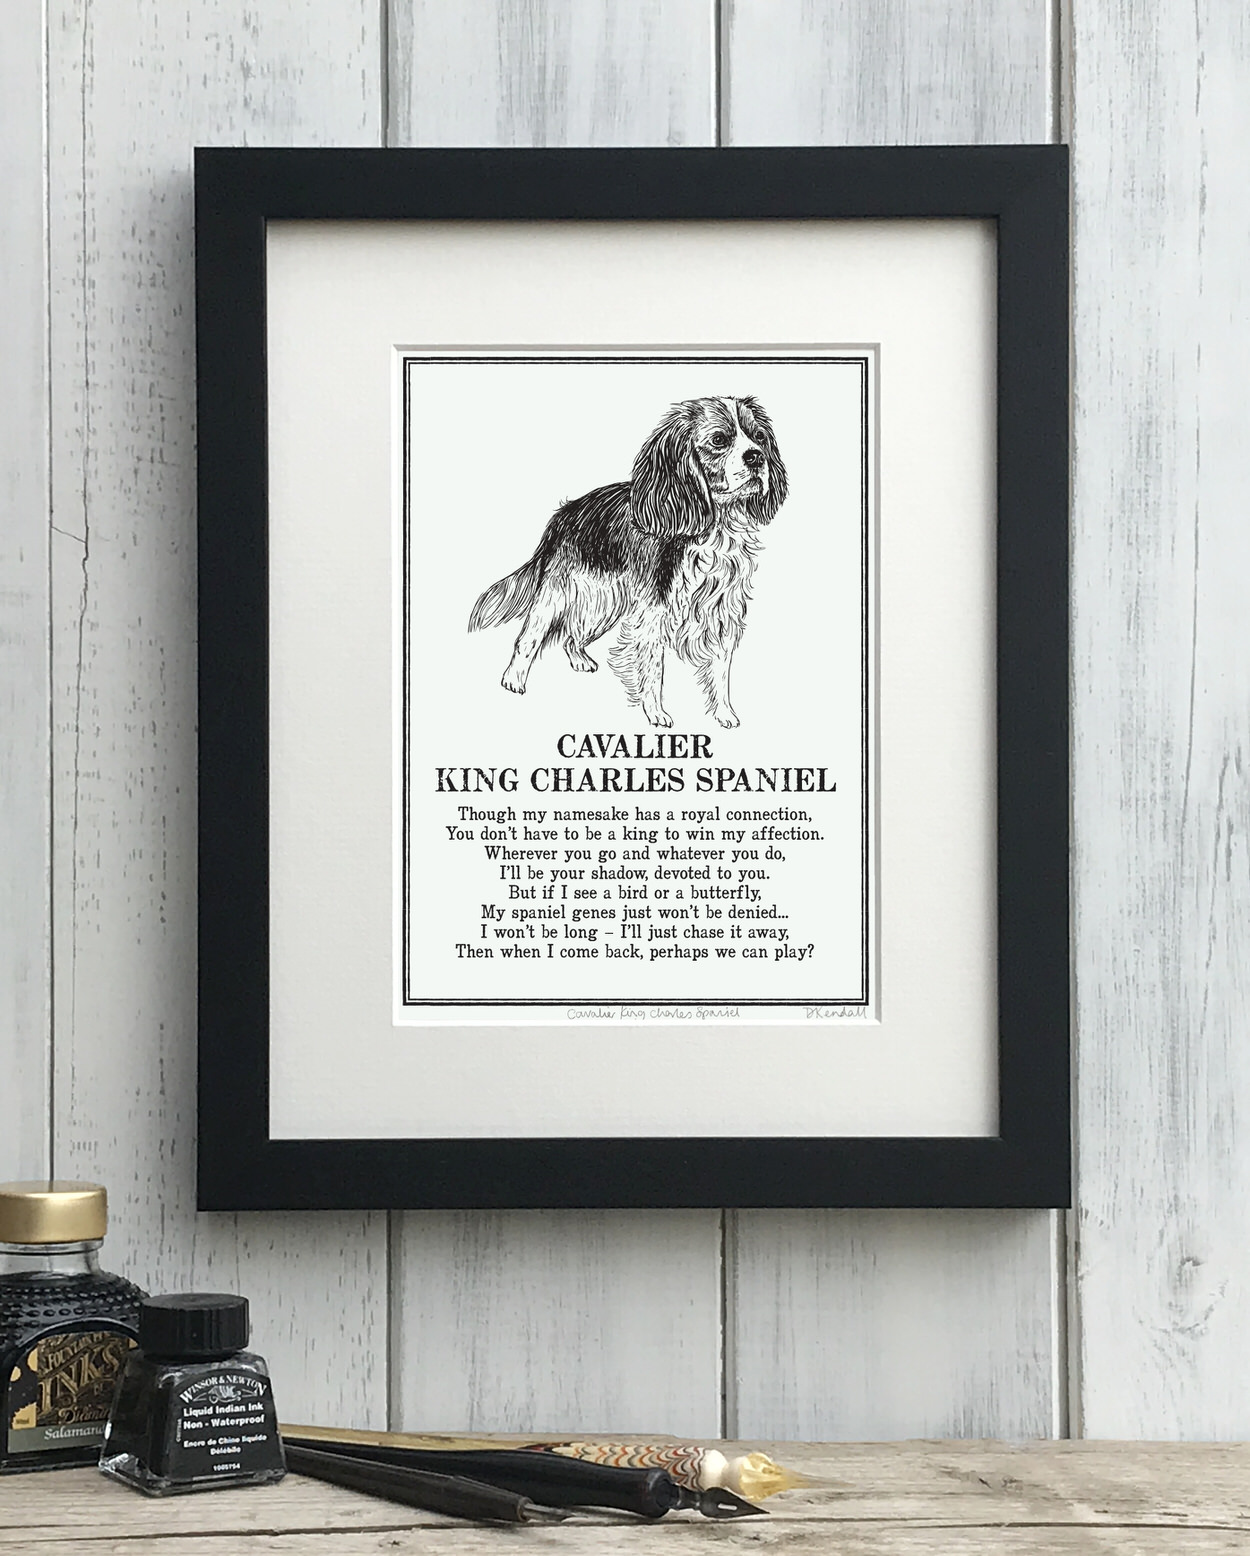 Cavalier King Charles Spaniel print illustrated poem by The Enlightened Hound